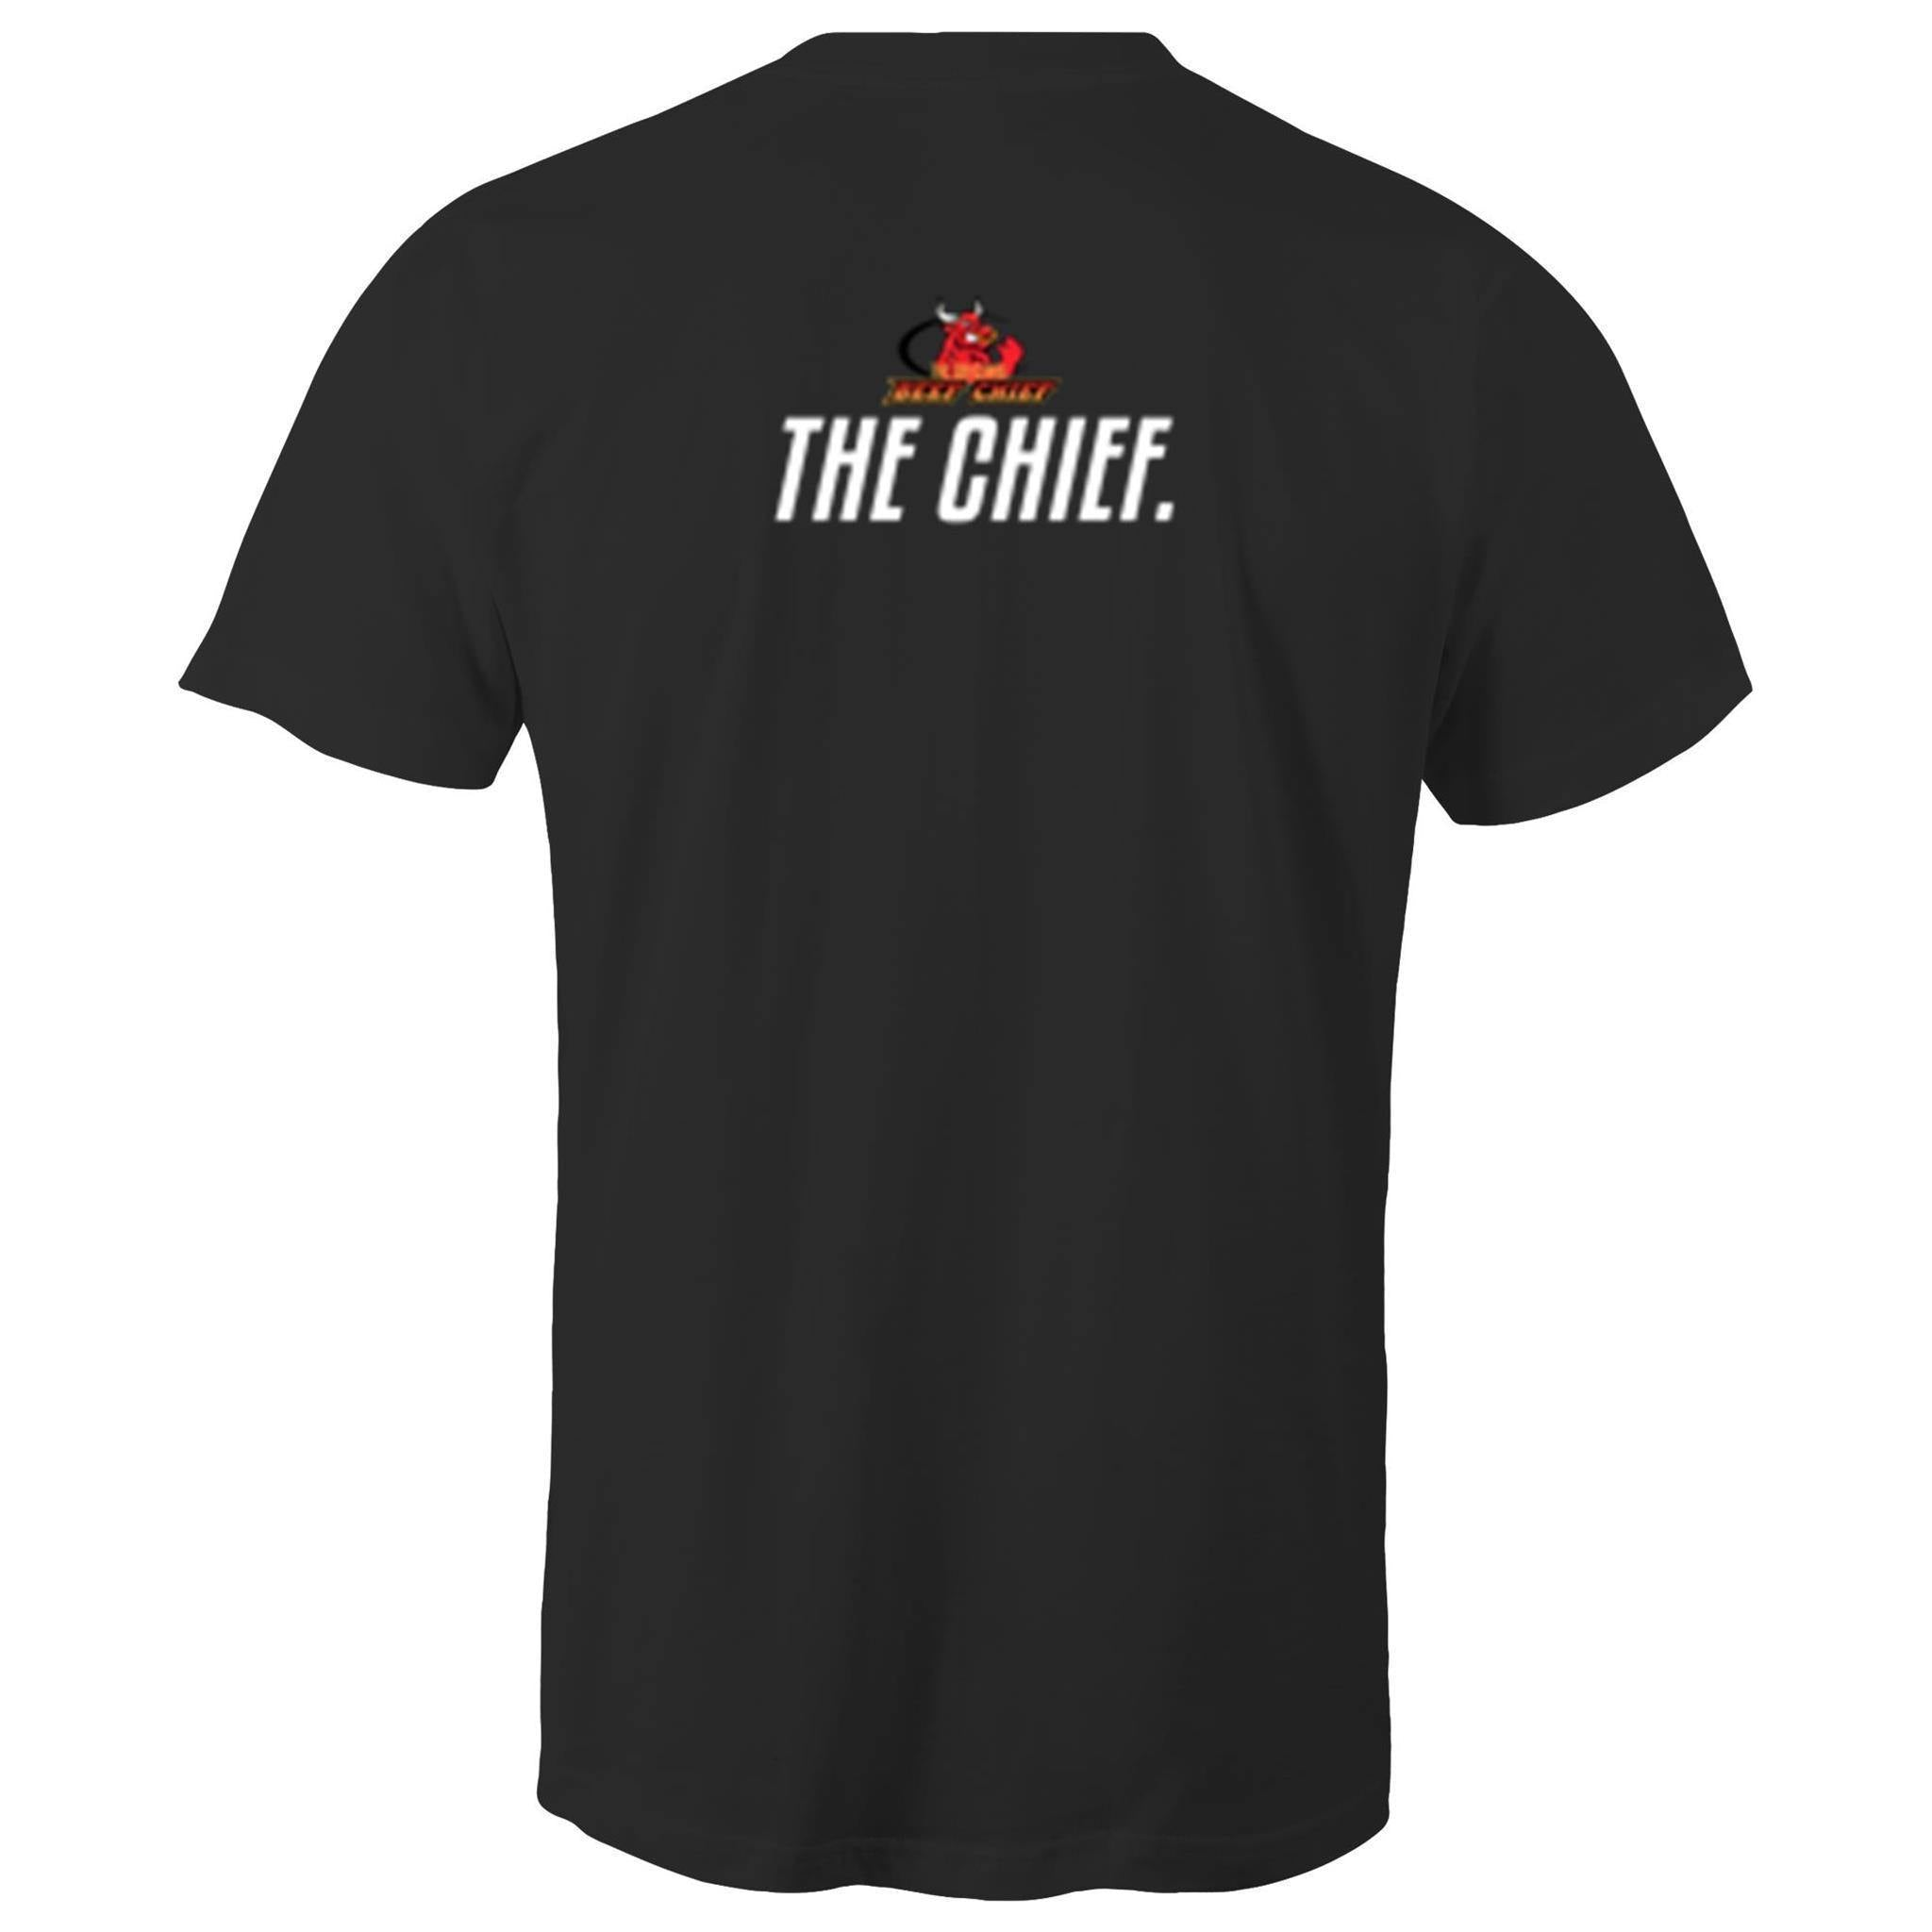 The Chief. - Original Beef Chief